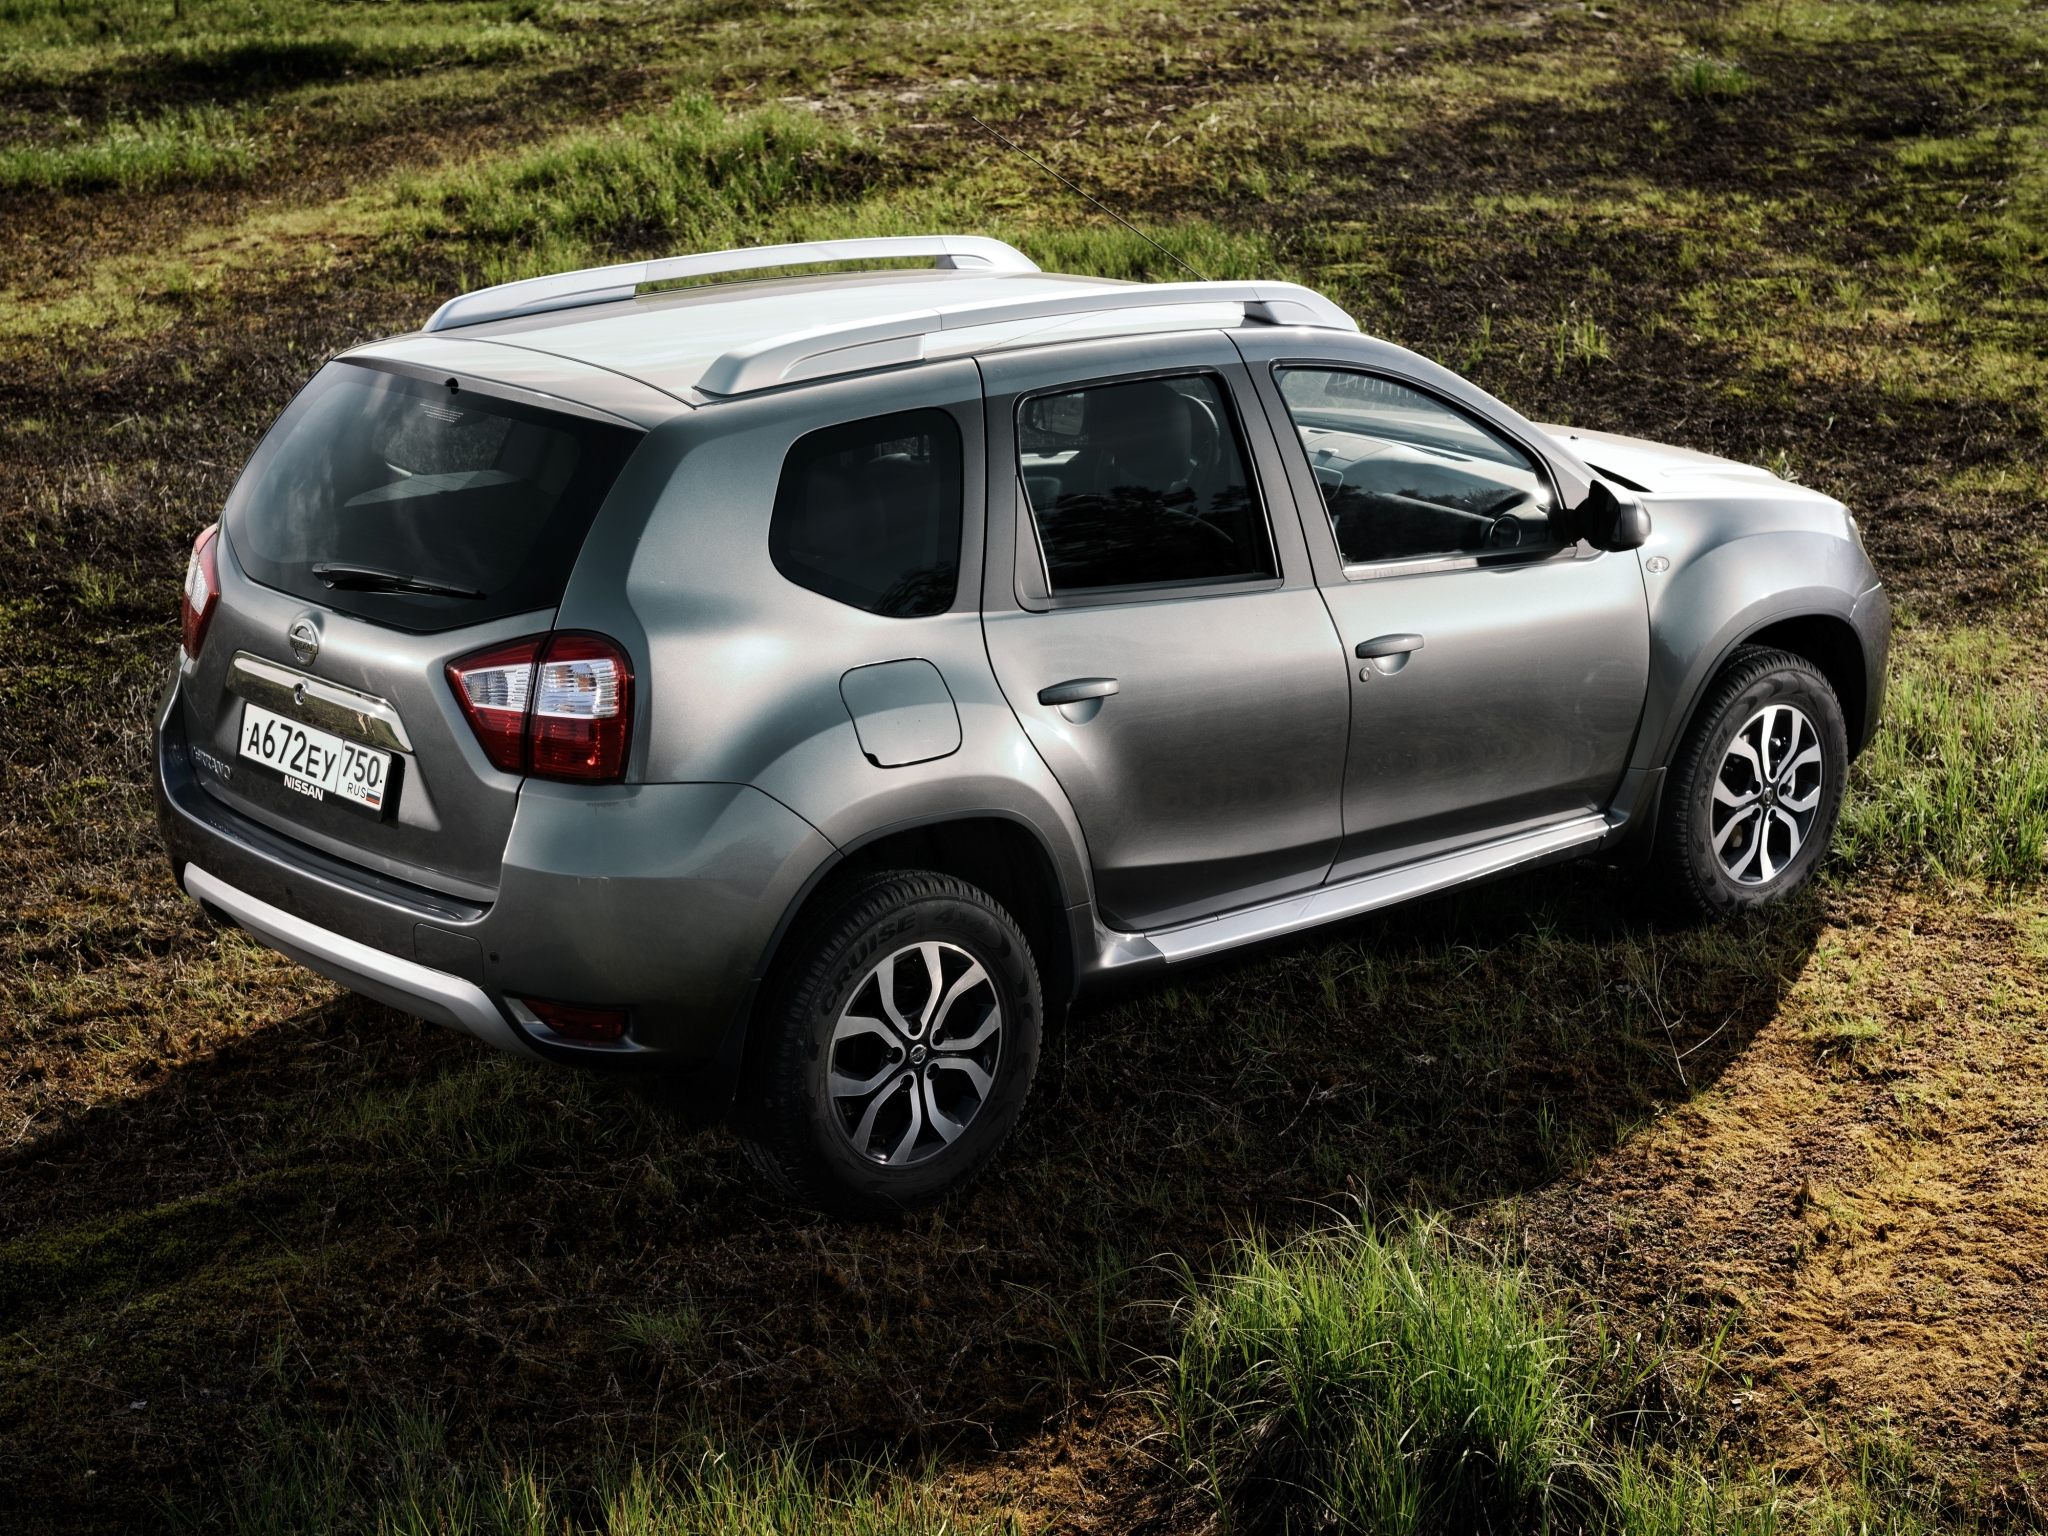 Nissan Juke For Sale >> New Nissan Terrano SUV Goes On Sale in Russia - autoevolution